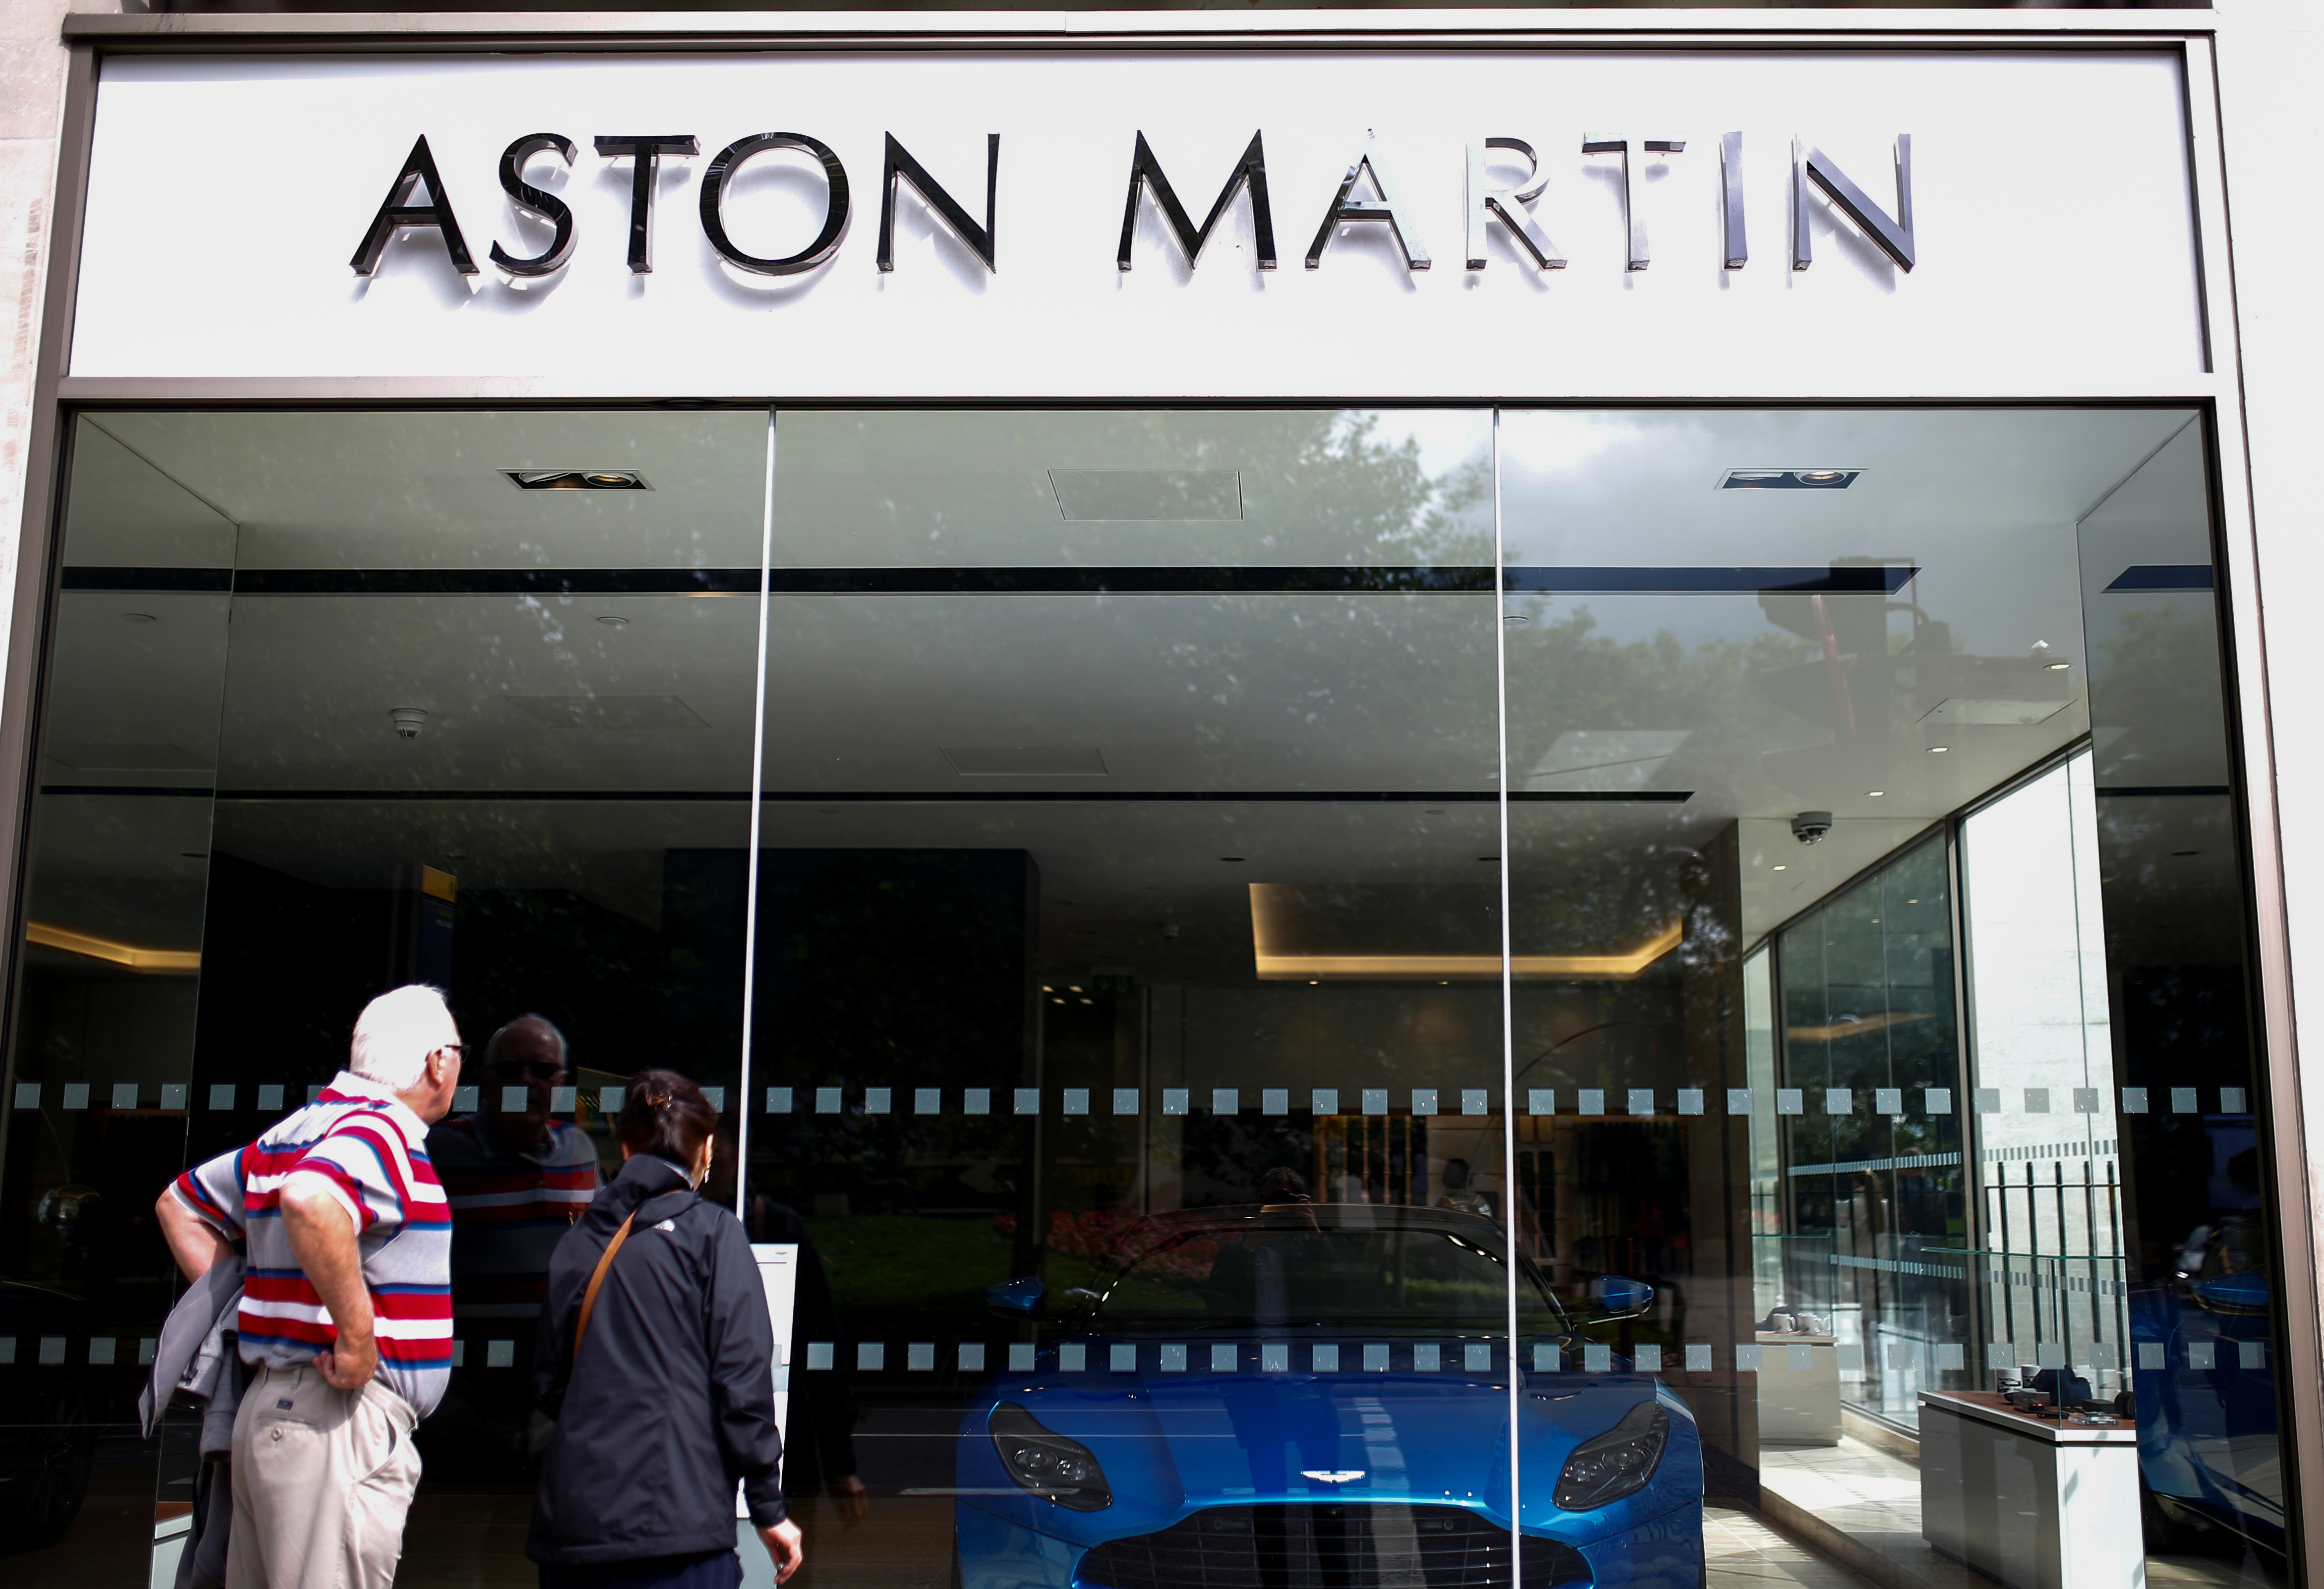 An Aston Martin logo is seen at a dealership in central London, Britain August 29, 2018. REUTERS/Henry Nicholls/File photo